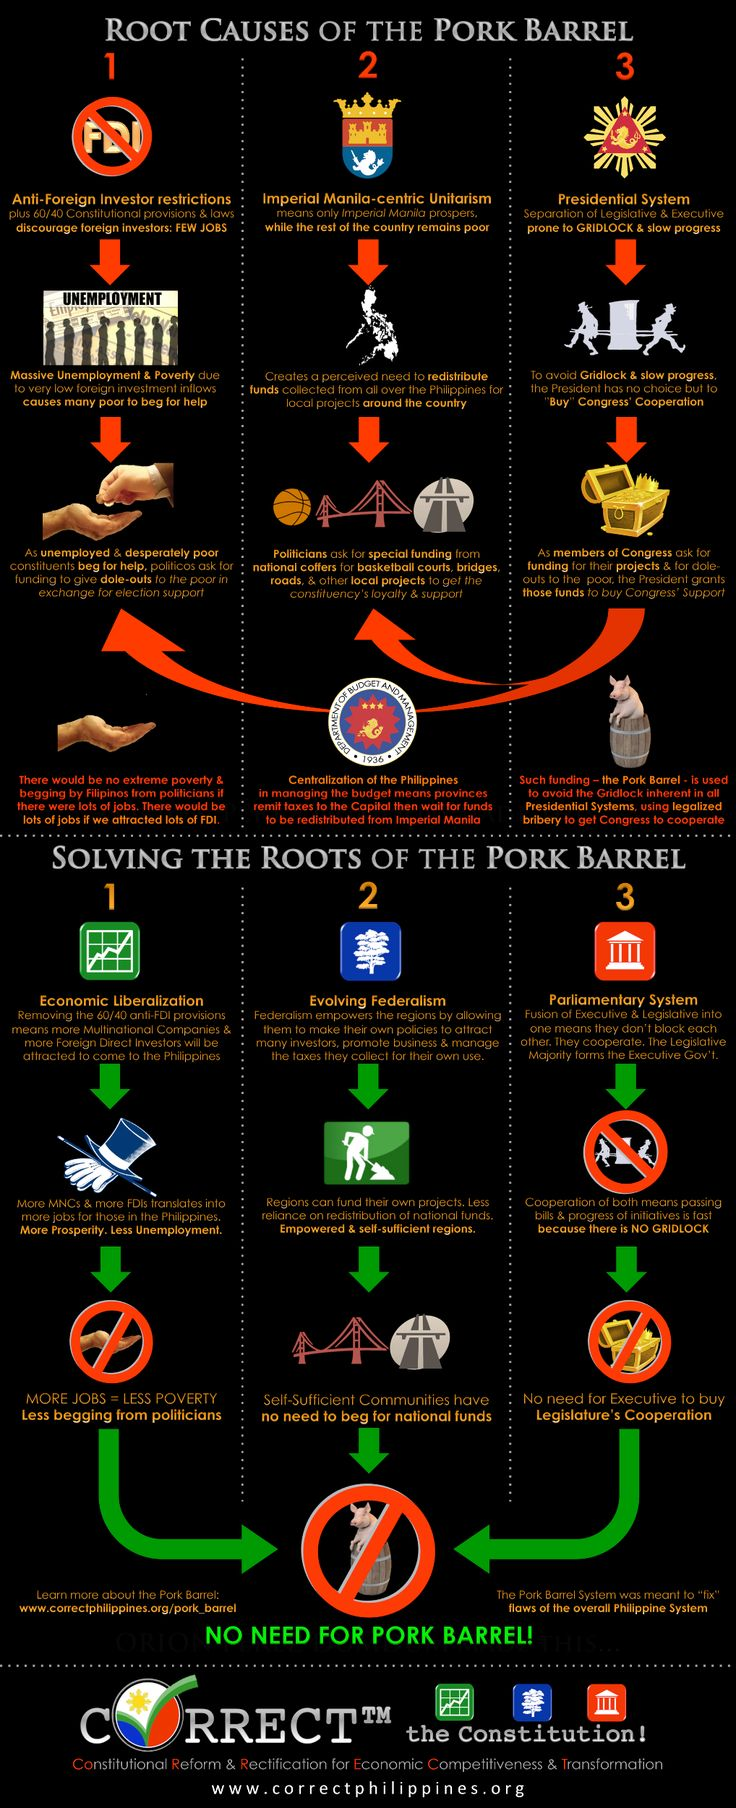 Infographic: Solutions to the Root Causes of the Pork Barrel #scrapPork #forwardmarch